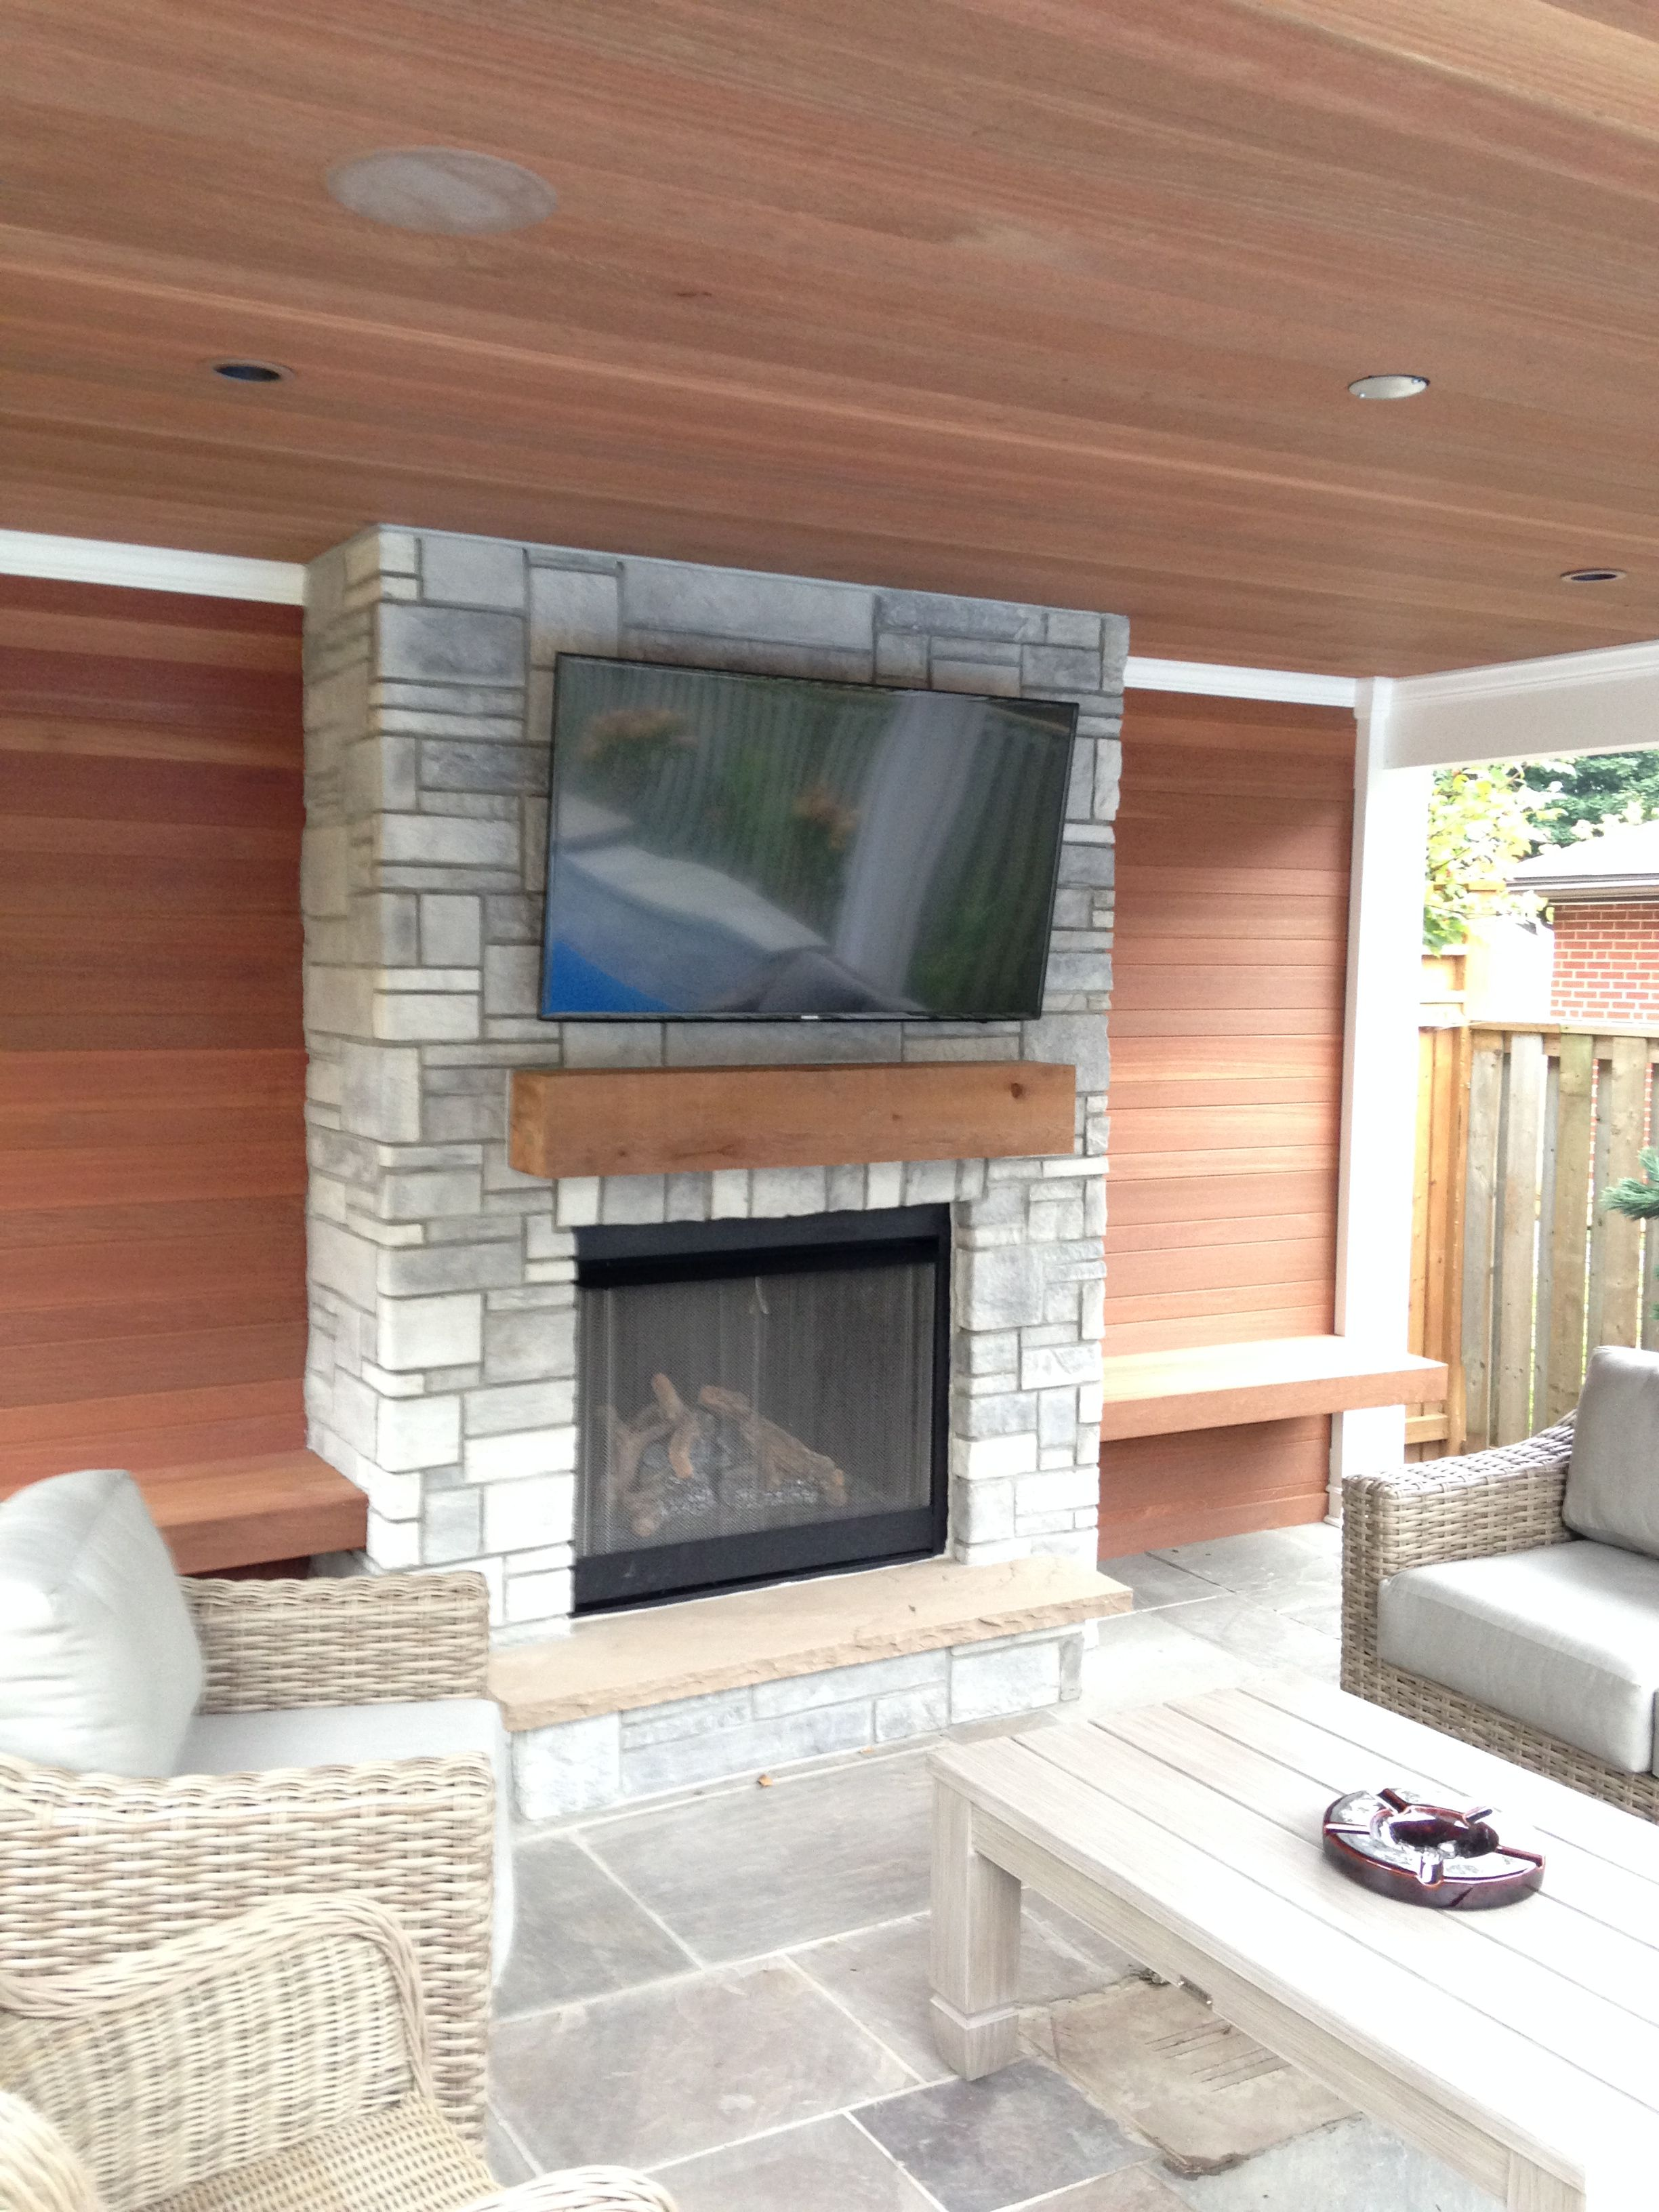 poolside cabana pool house with fireplace and feature wall using